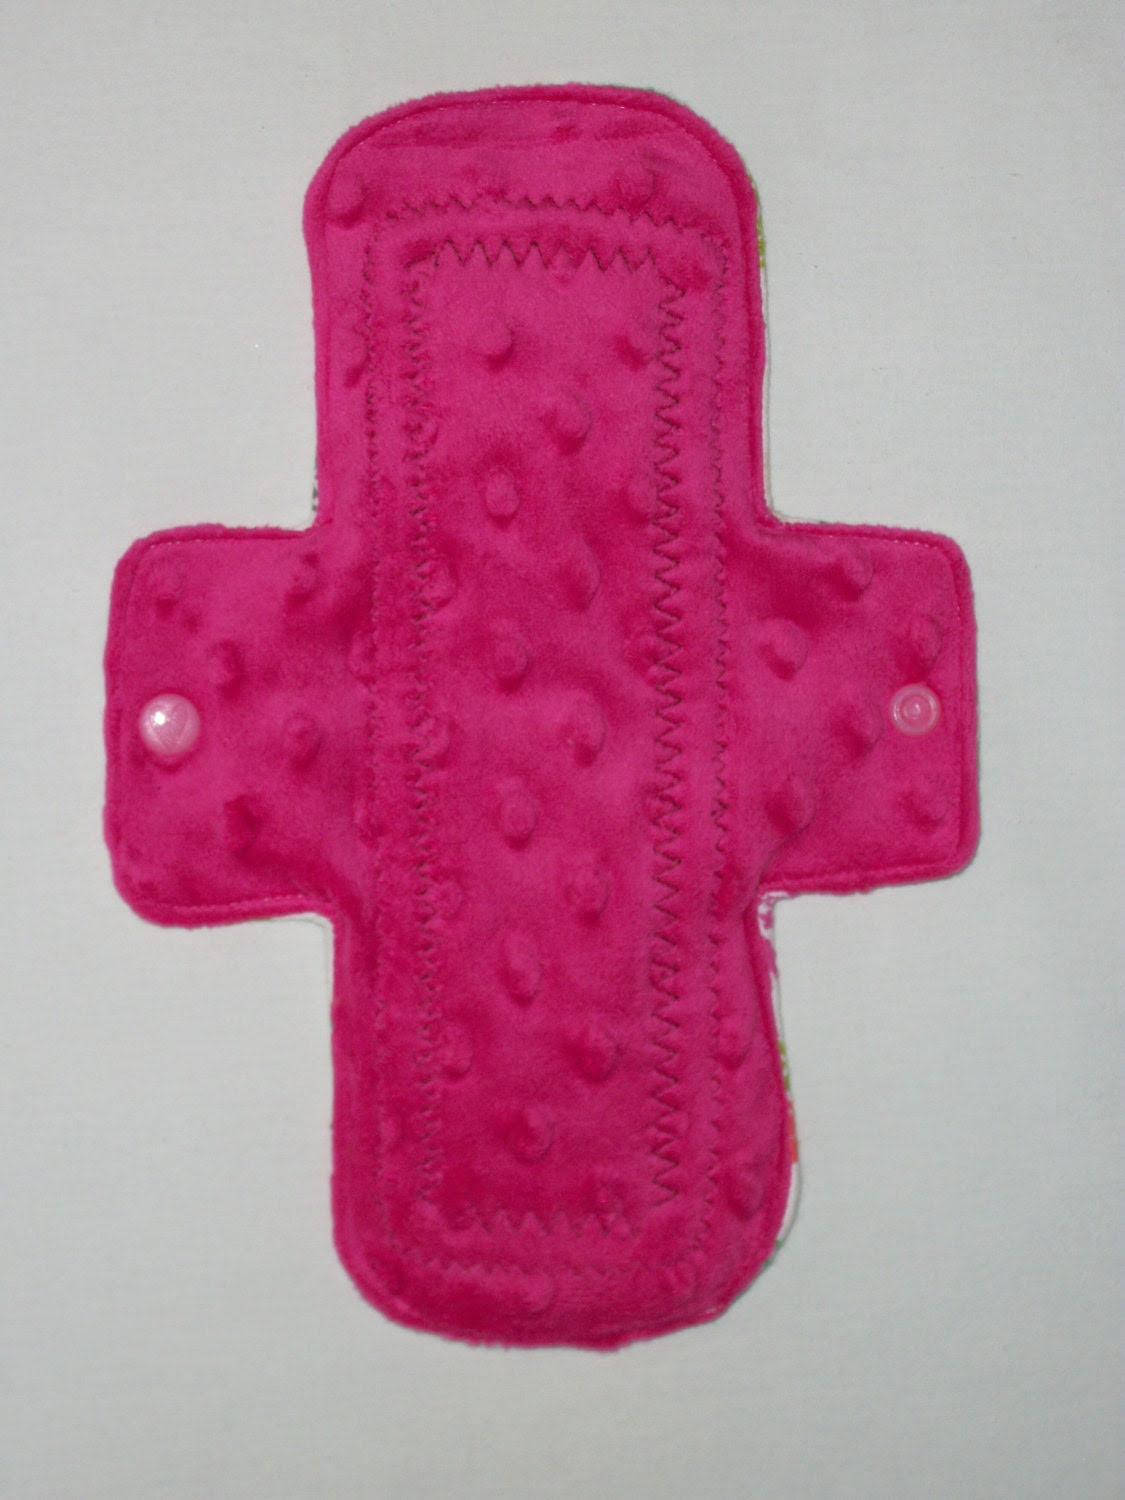 "Cozy Cloth 10"" Moderate Flow Minky Cloth Menstrual Pad - Bumpy Pink"